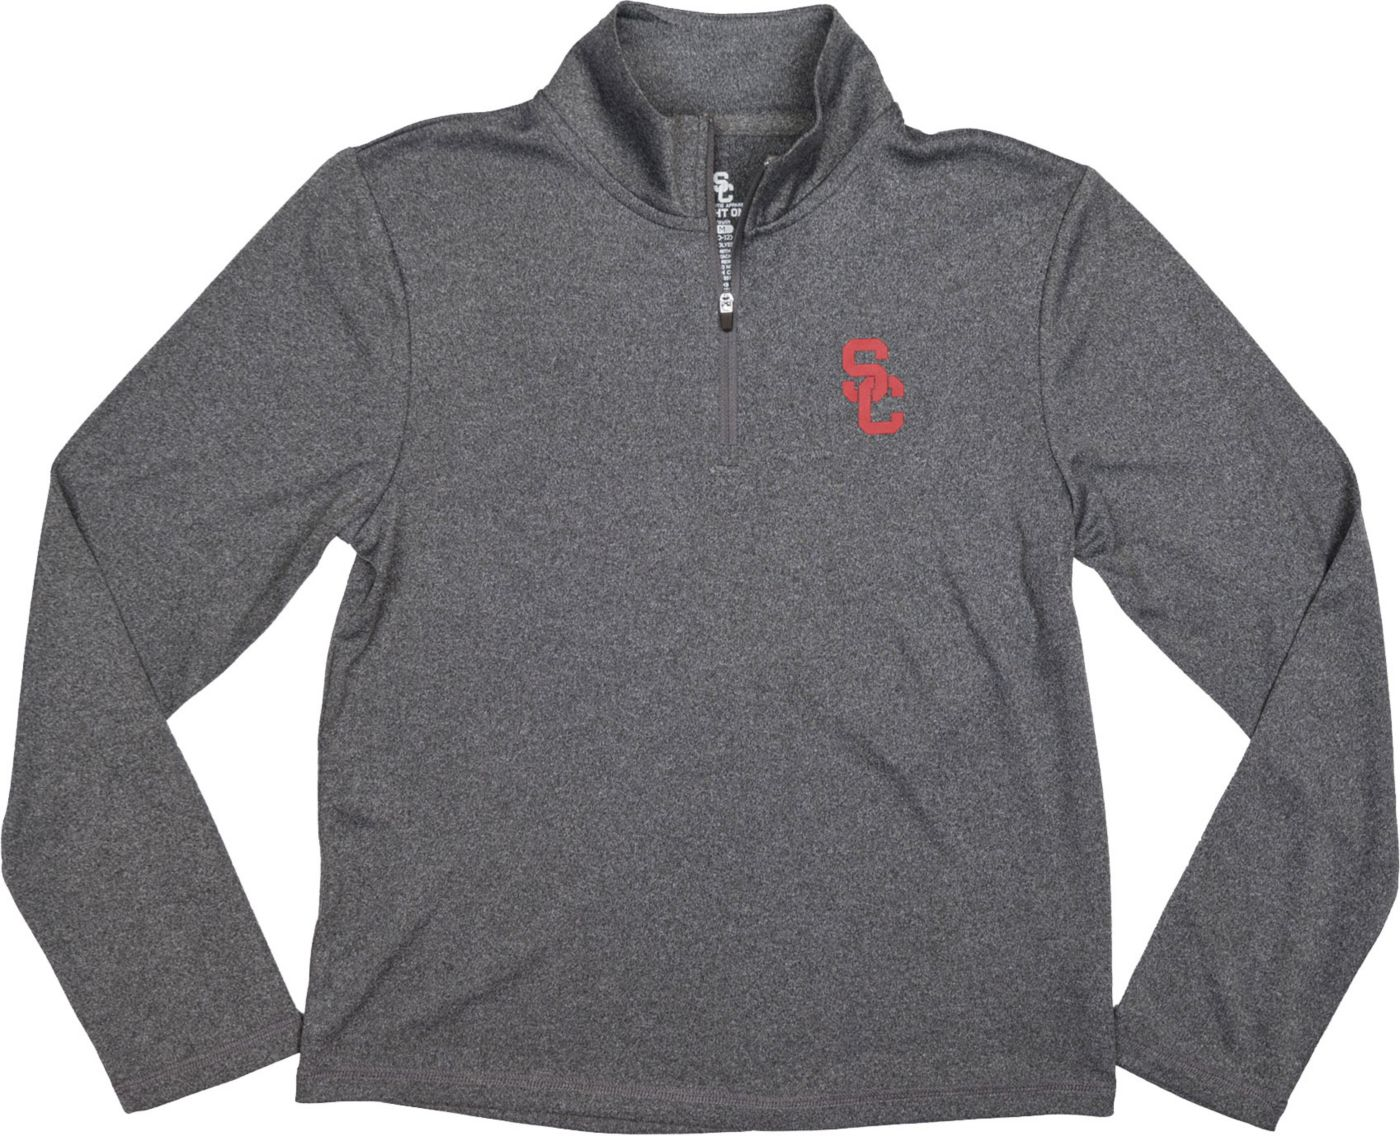 USC Authentic Apparel Youth USC Trojans Grey Aries Quarter-Zip Top